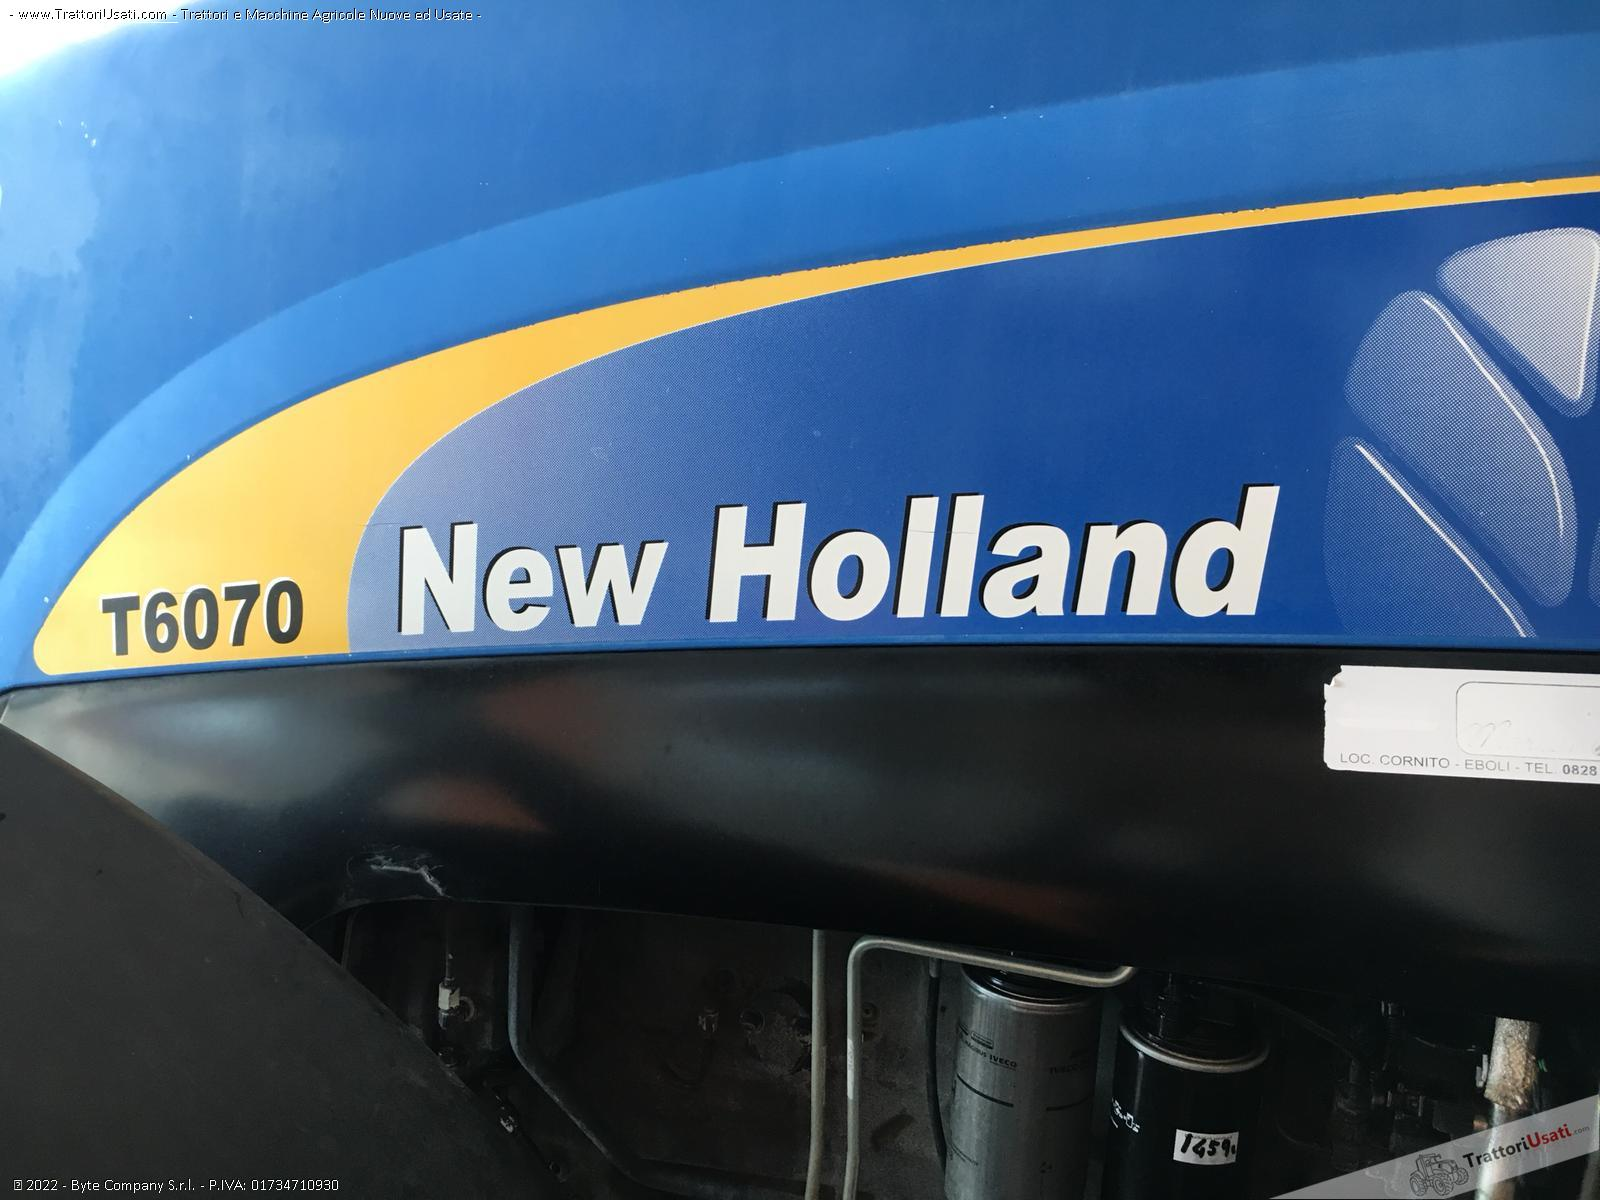 Trattore new holland - t6070 3